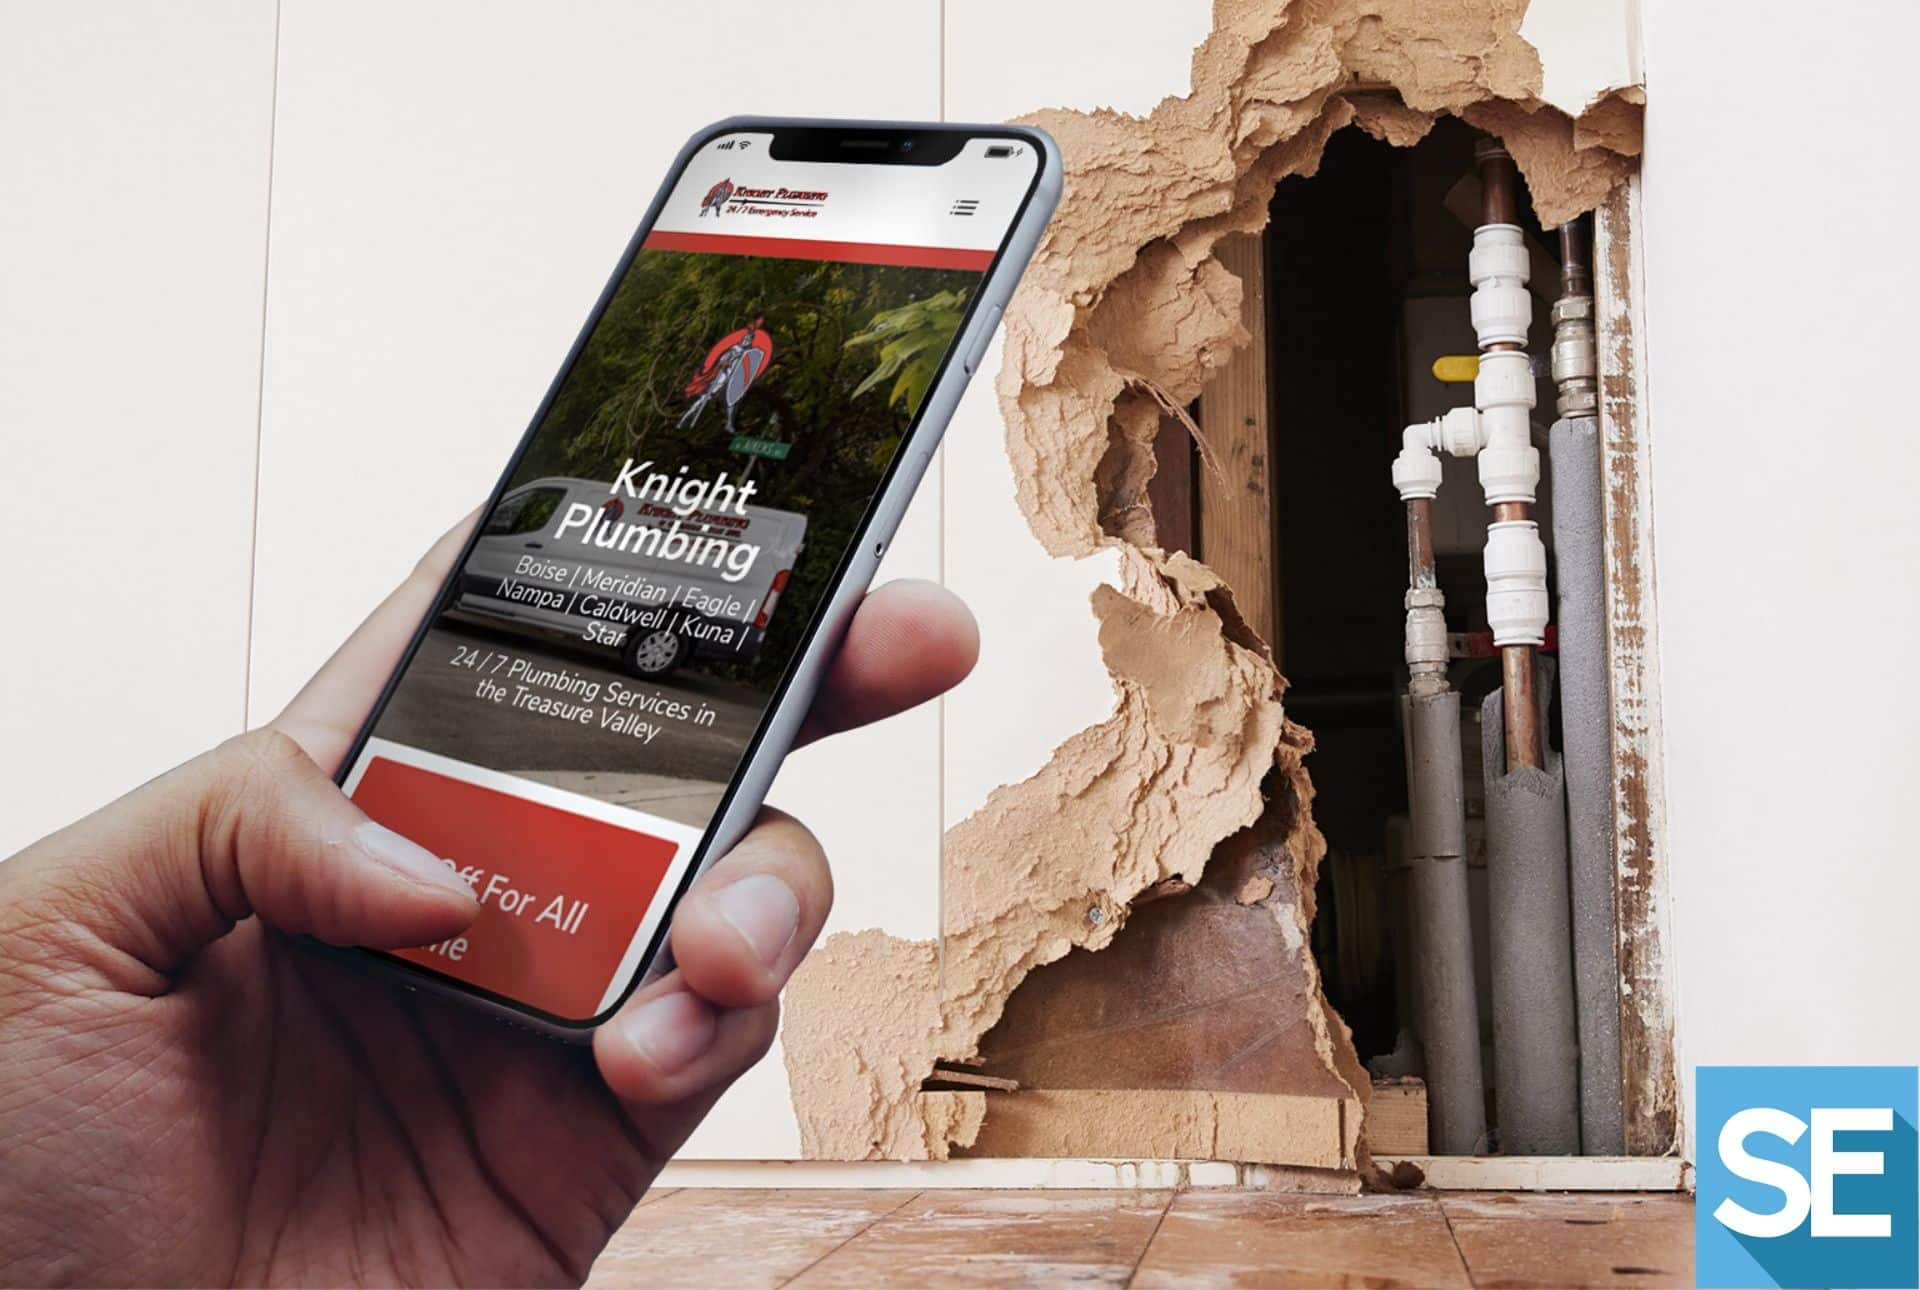 Someone opens Knight Plumbing's mobile site to call about a pipe repair; there's a damaged wall with exposed pipes in the background.